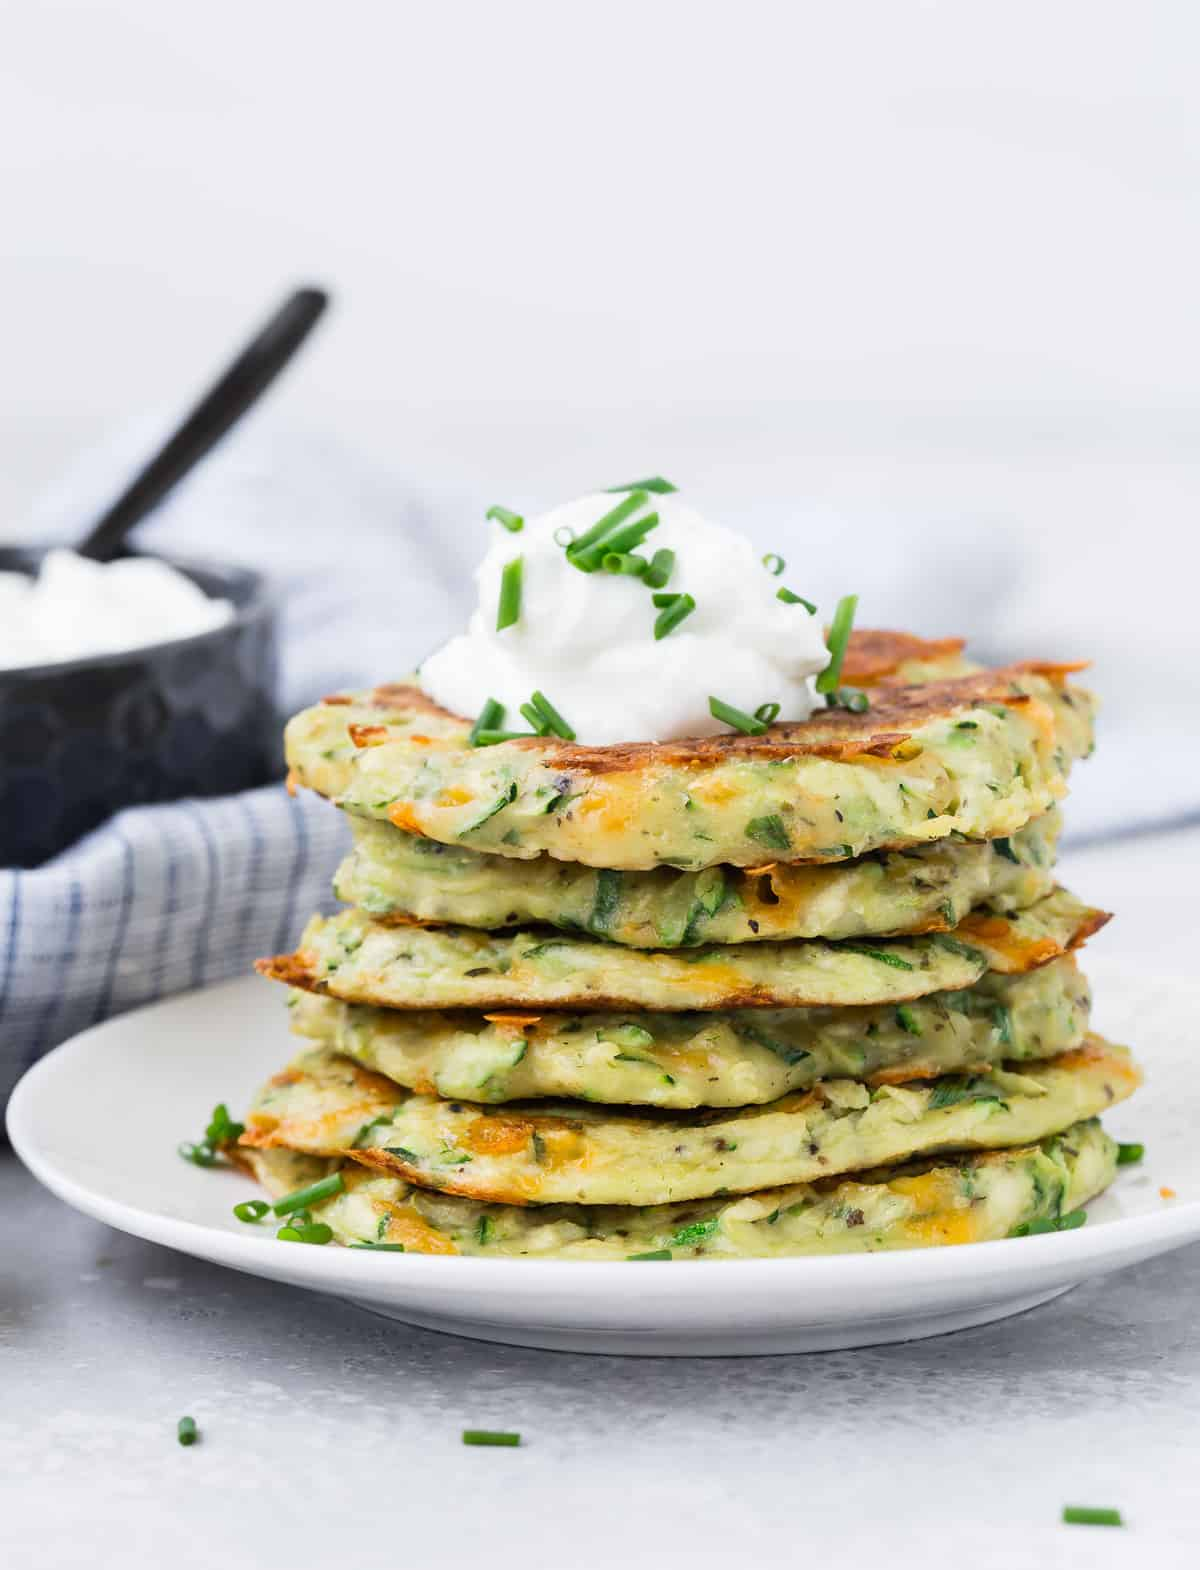 A stack of zucchini pancakes on a white plate, topped with sour cream and chives.